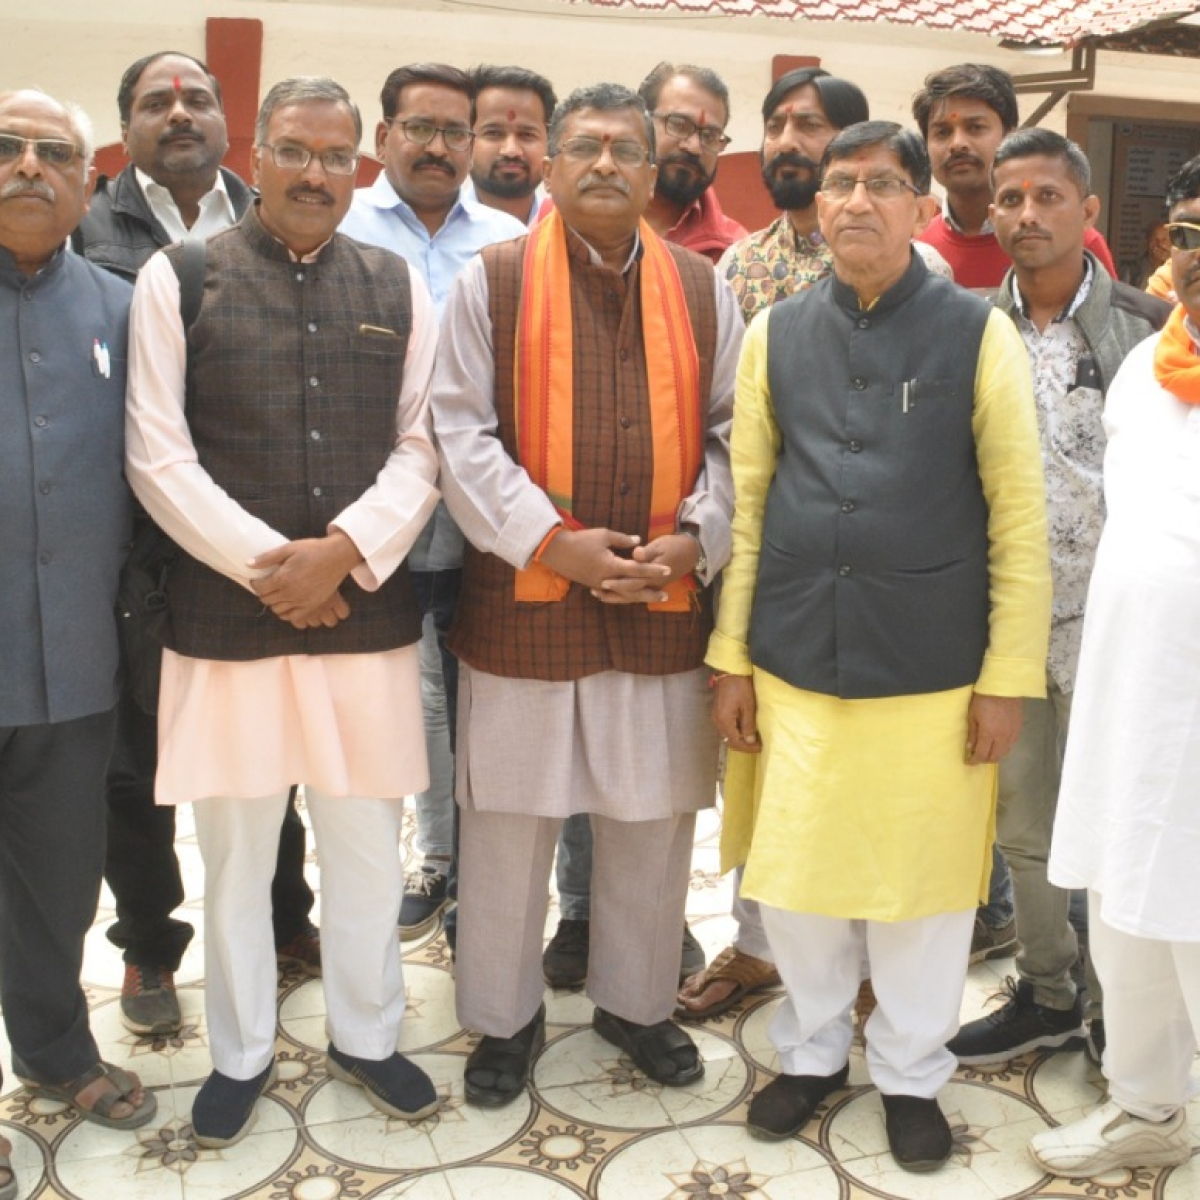 Indore: VHP to launch awareness drive on CAA